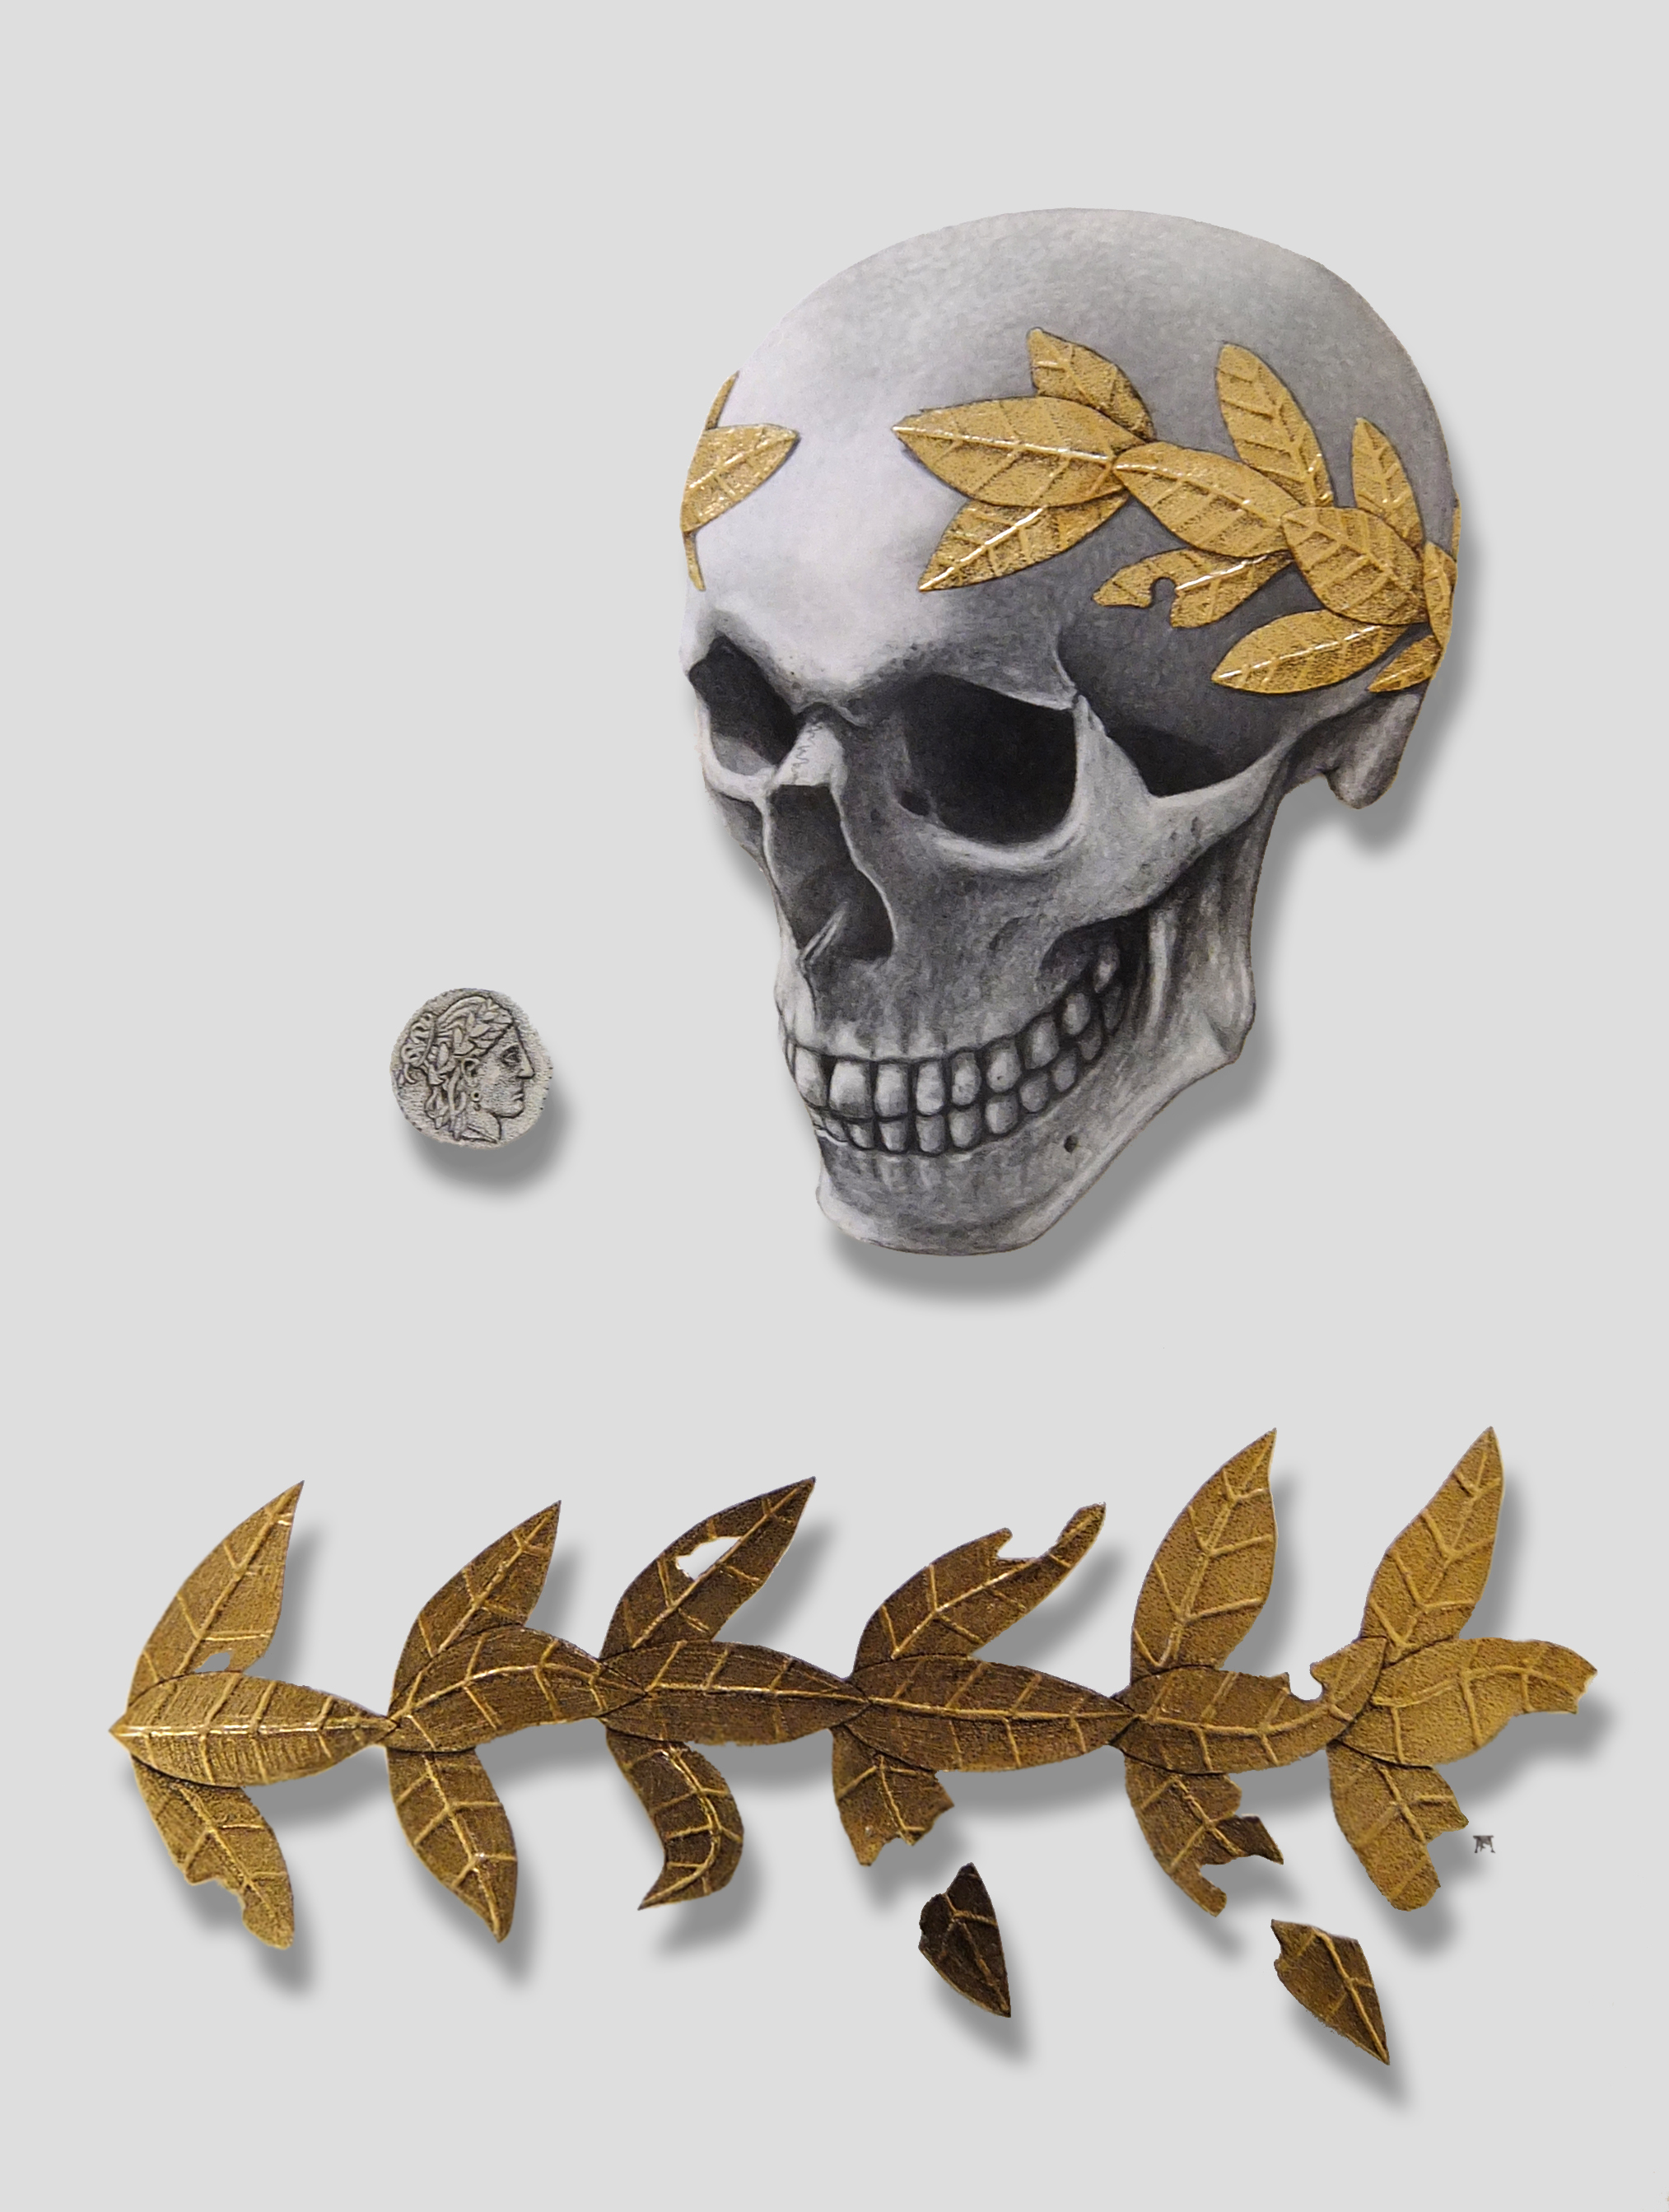 'Skull with Golden Wreath and Coin'